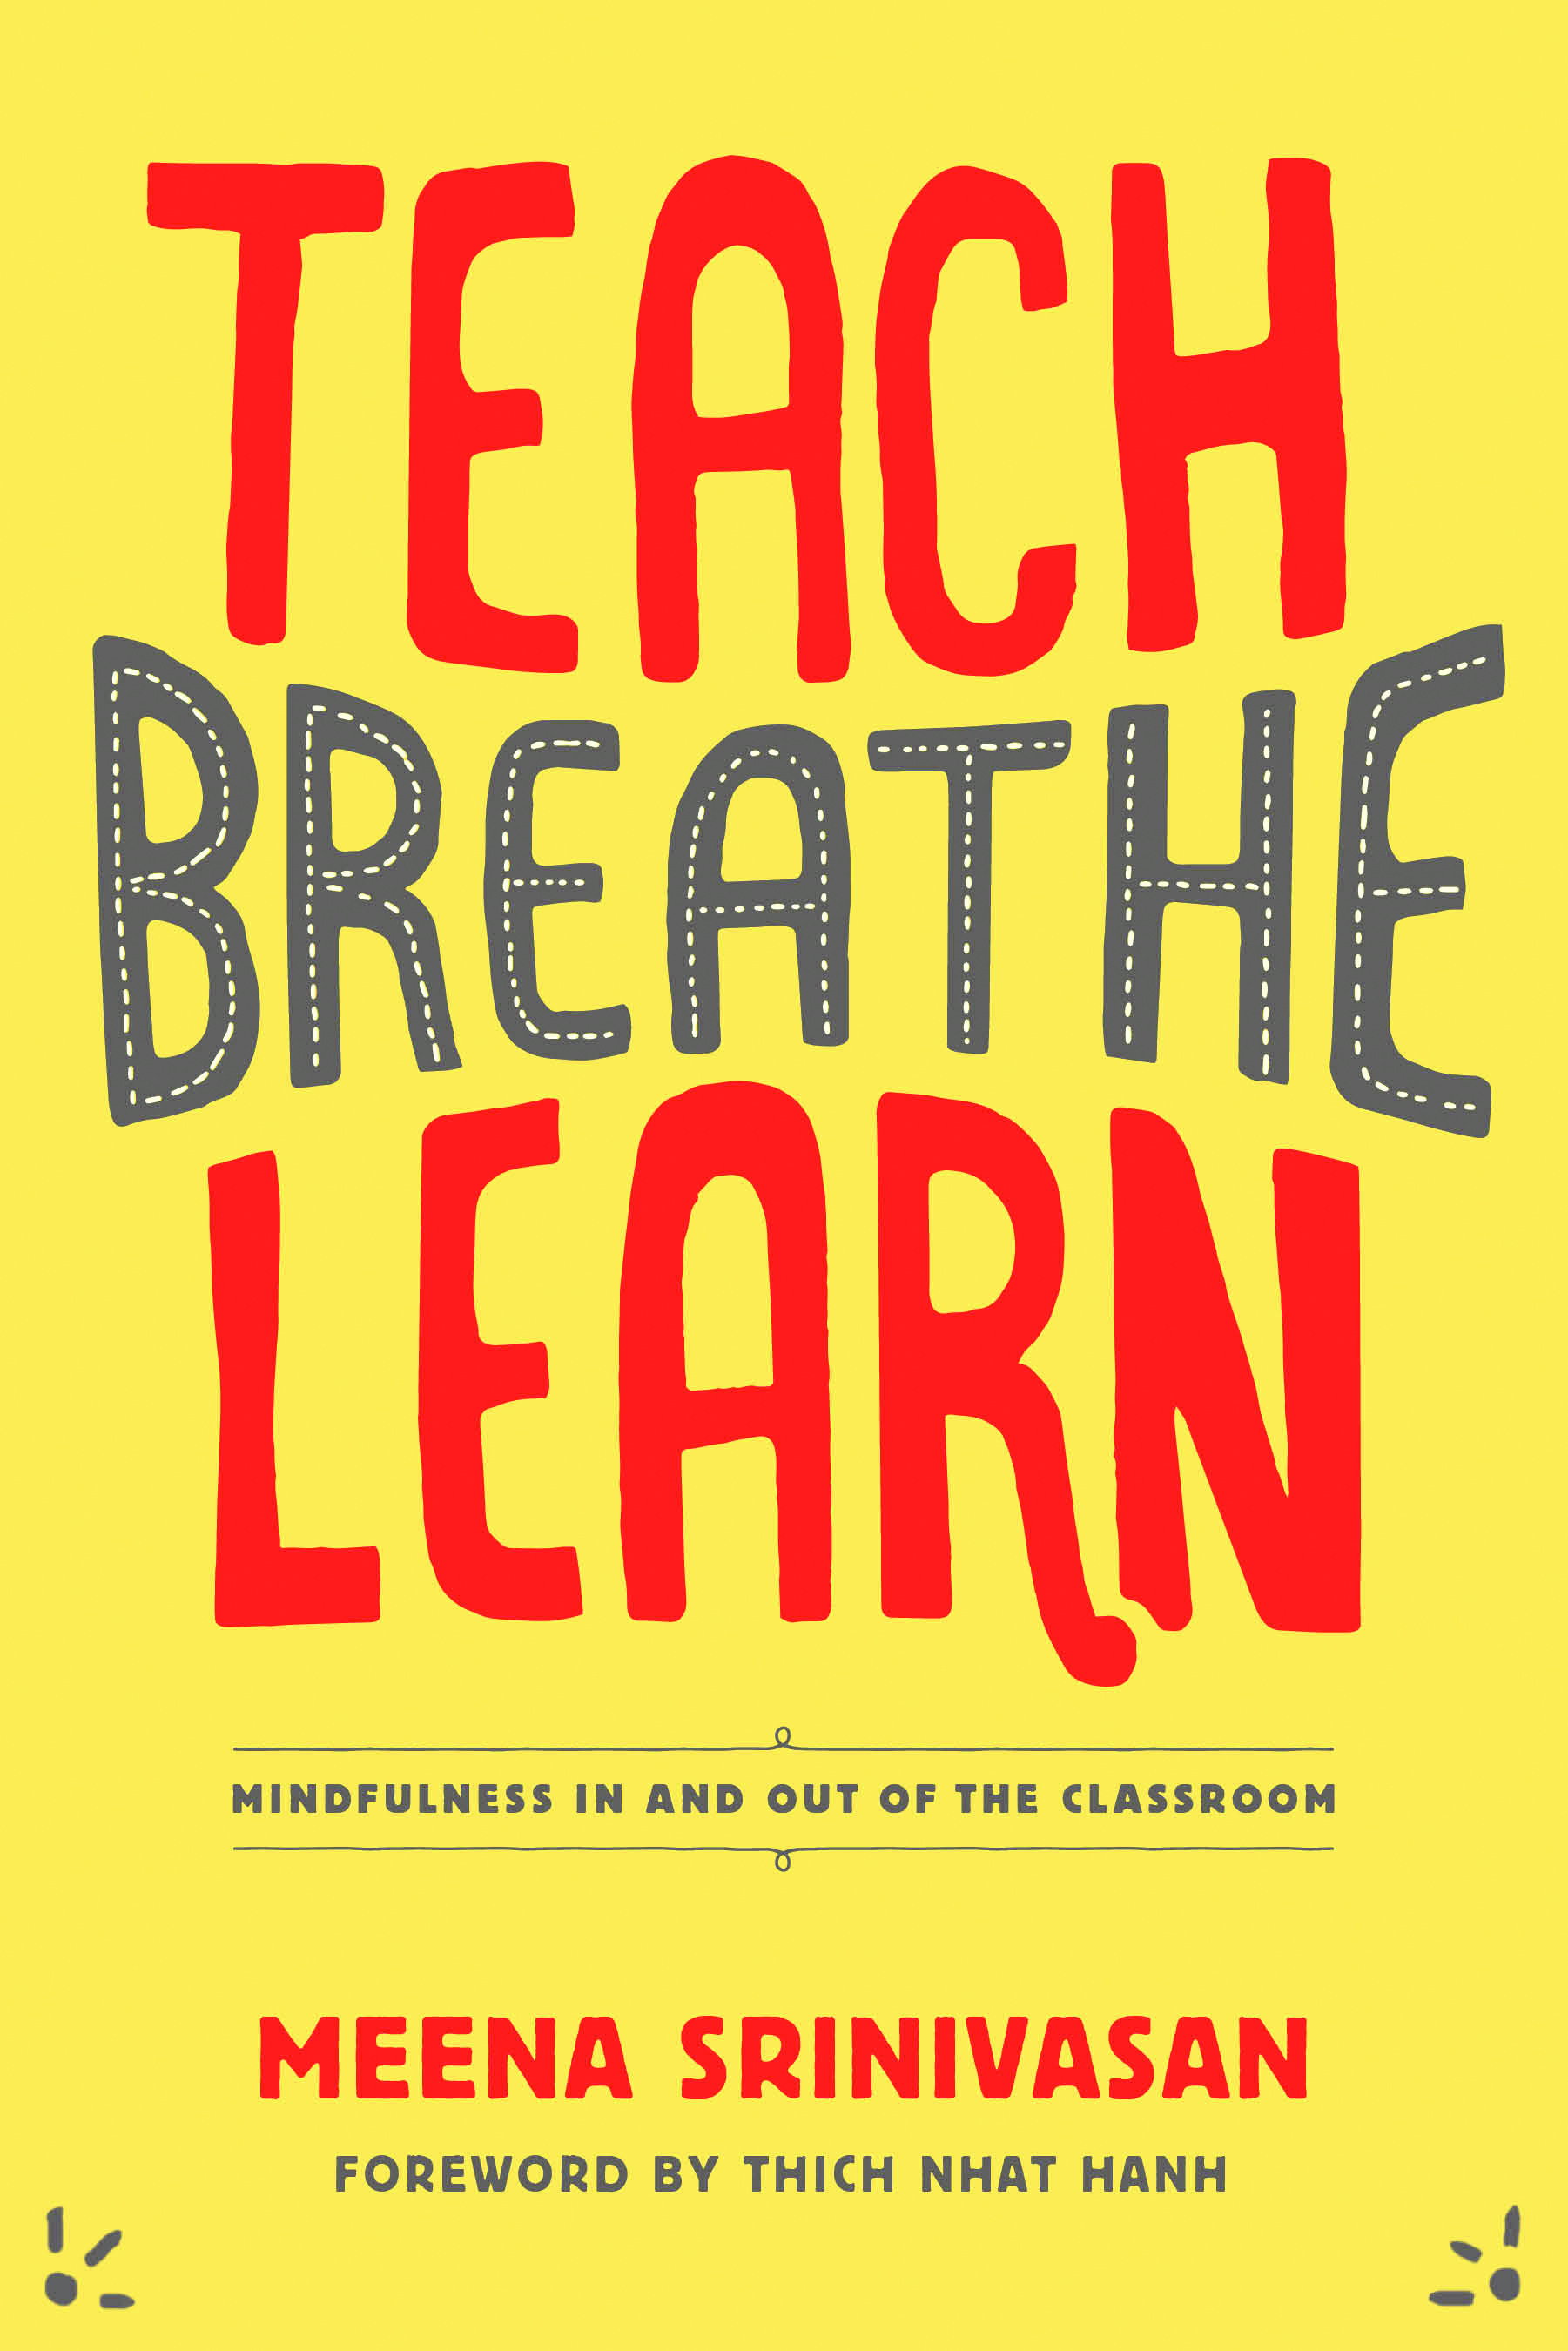 "- ""Meena is a precious ambassador of mindfulness, concretely showing us how to bring mindfulness to the 'front lines' of the classroom, the staffroom, and all throughout our day. The wisdom in this book is grounded in Meena's personal experience of applying mindfulness and compassion to respond rather than react to situations, in order to nurture what is best in us and in our students and skillfully take care of difficult moments."" - Thich Nhat Hanh, Nobel Peace Prize Nominee""Mindfulness offers a way for us to tap into the inner resilience, focus and wellbeing that are already inside us. Teach, Breathe, Learn is a key that unlocks this inner potential. This book makes mindfulness accessible for teachers everywhere and is a great resource for sharing mindfulness with young people. It is a helpful tool for parents and educators of all backgrounds. As an accomplished international educator and dedicated mindfulness practitioner, Meena Srinivasan brings these two worlds together in this compelling book, showing how to embed mindfulness into teaching and life."" - Congressman Tim Ryan"